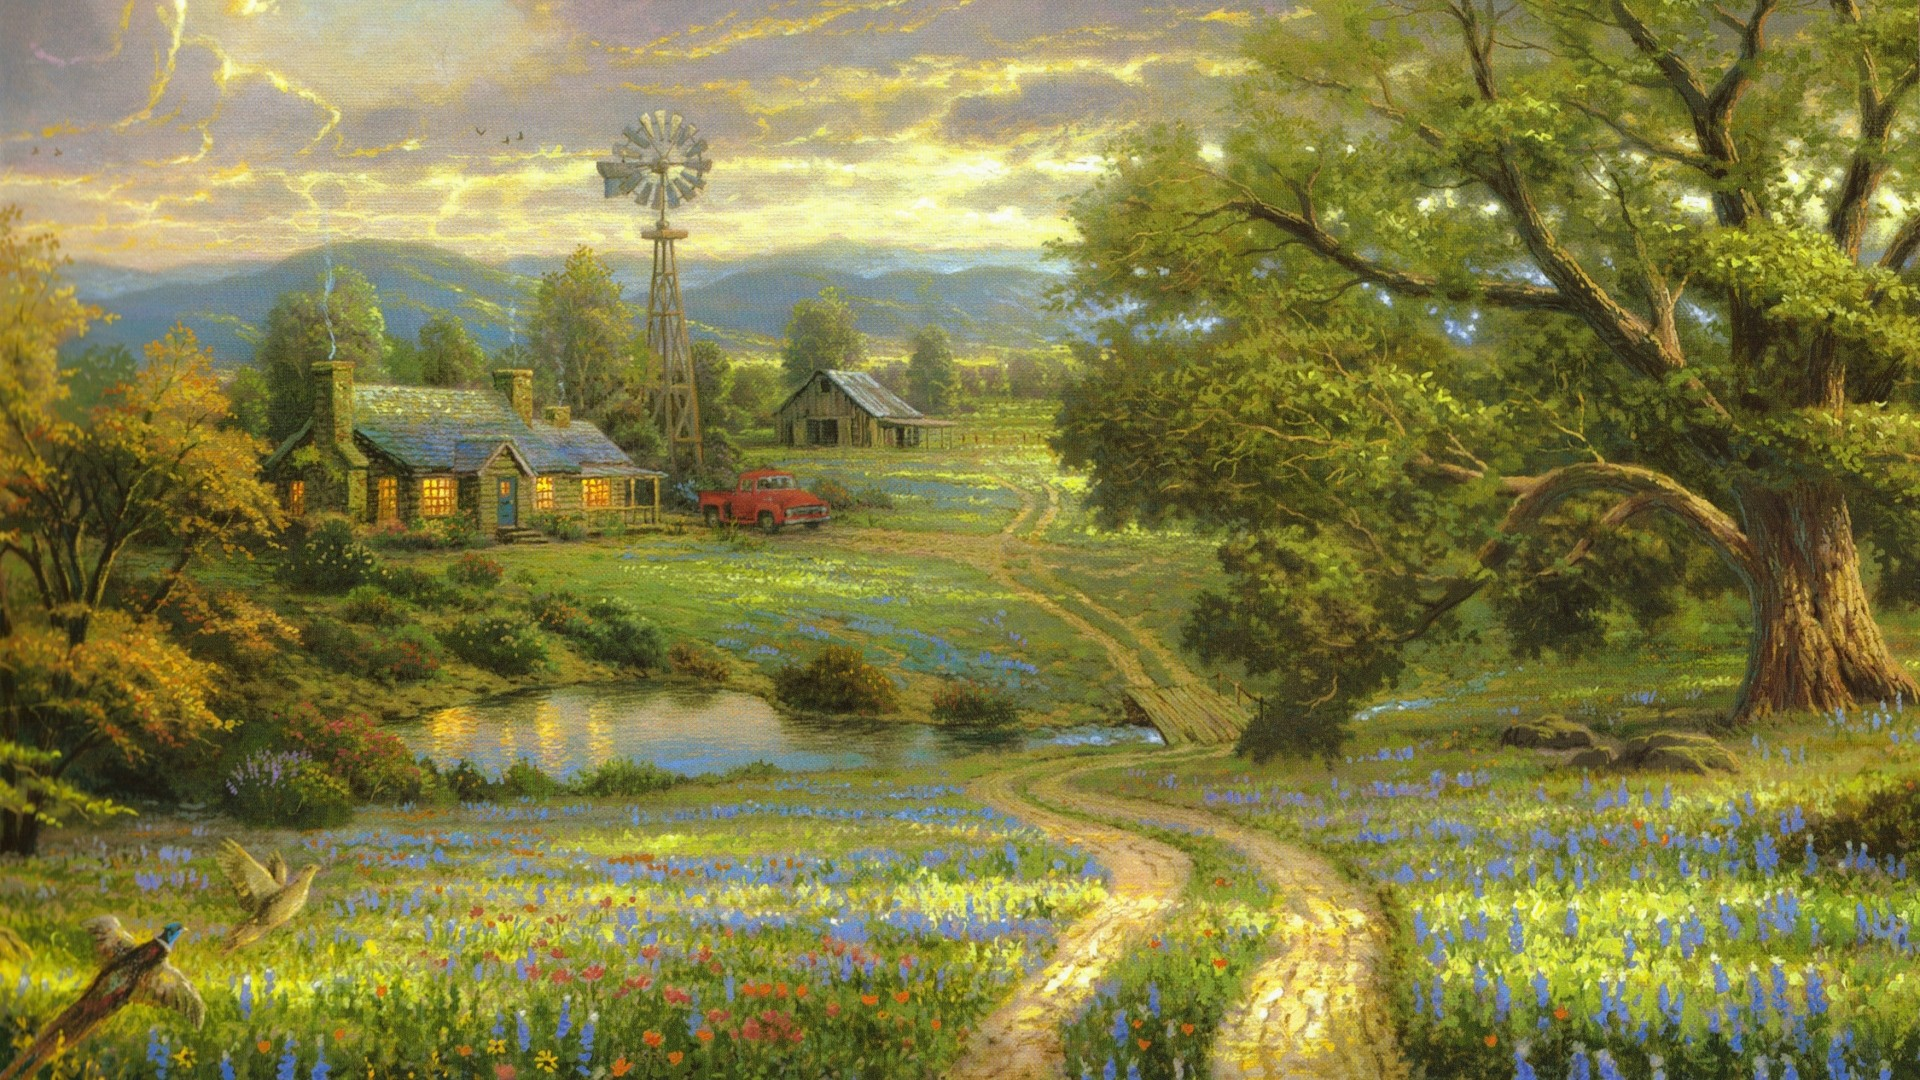 Preview wallpaper painting, art, landscape, road, country, at home, village